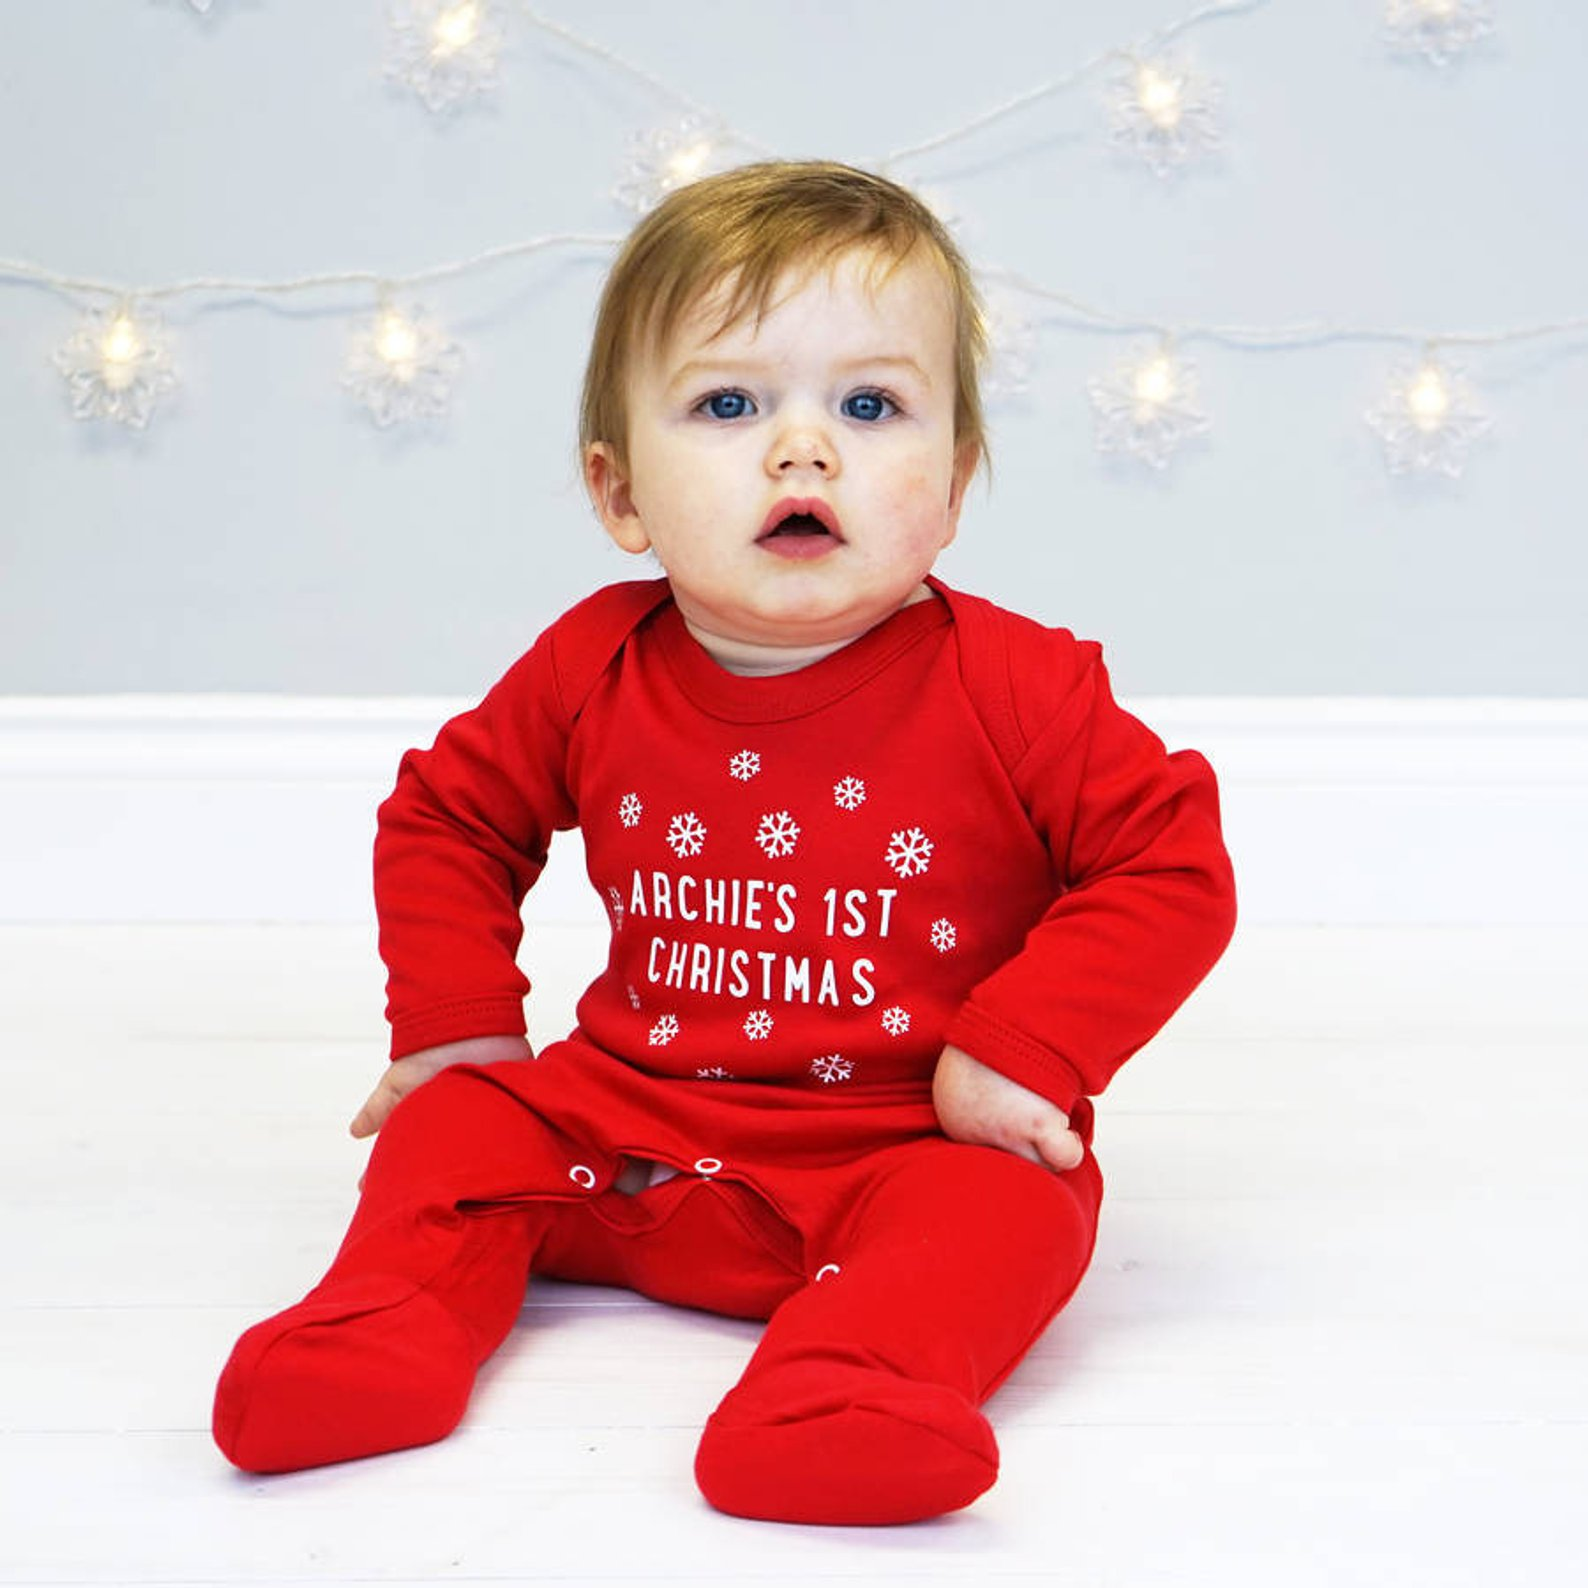 Personalized First Christmas Baby Outfit By Sparks and Daughters